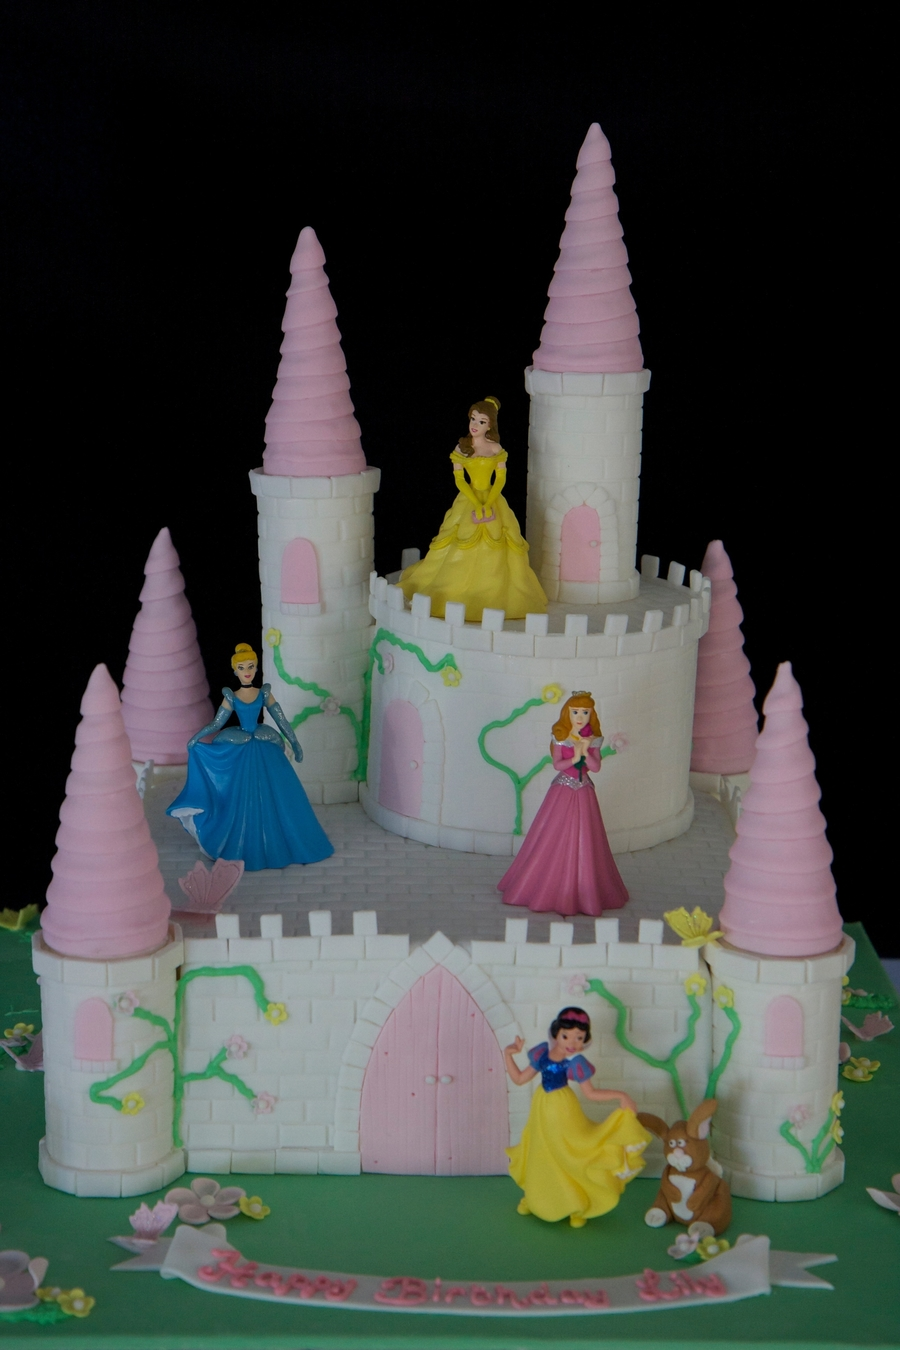 Lily's Princess Castle on Cake Central